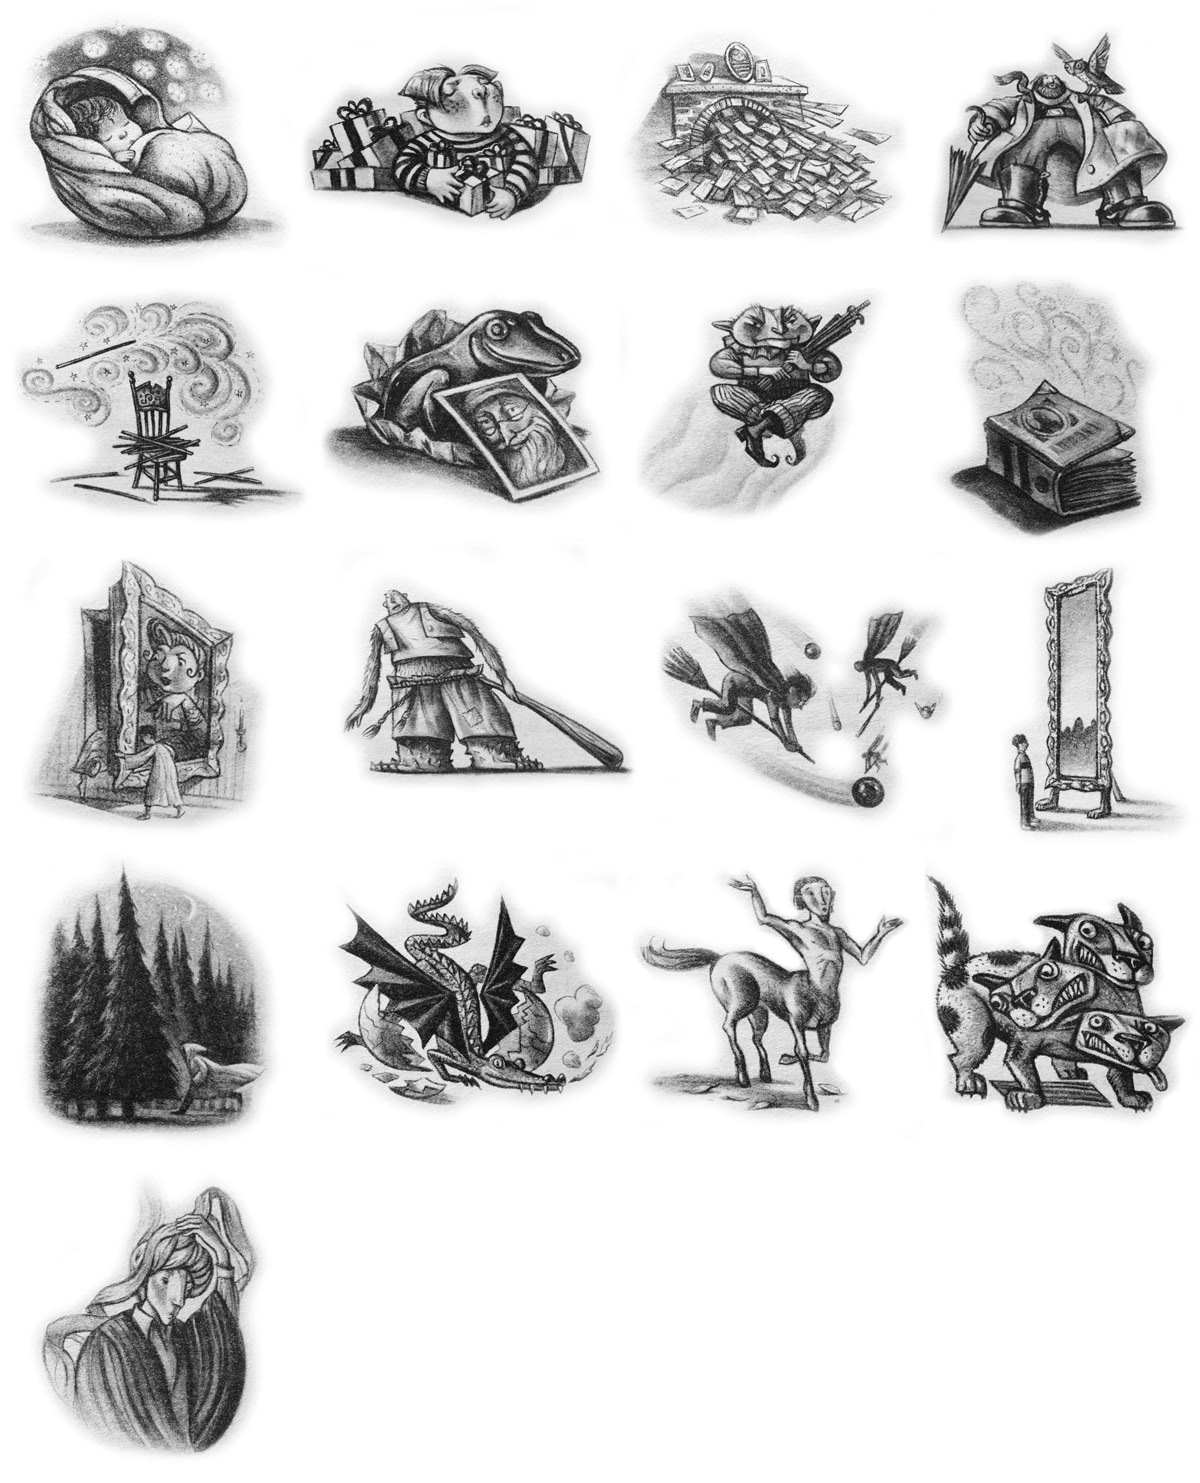 Every 'Philosopher's Stone' chapter illustration.